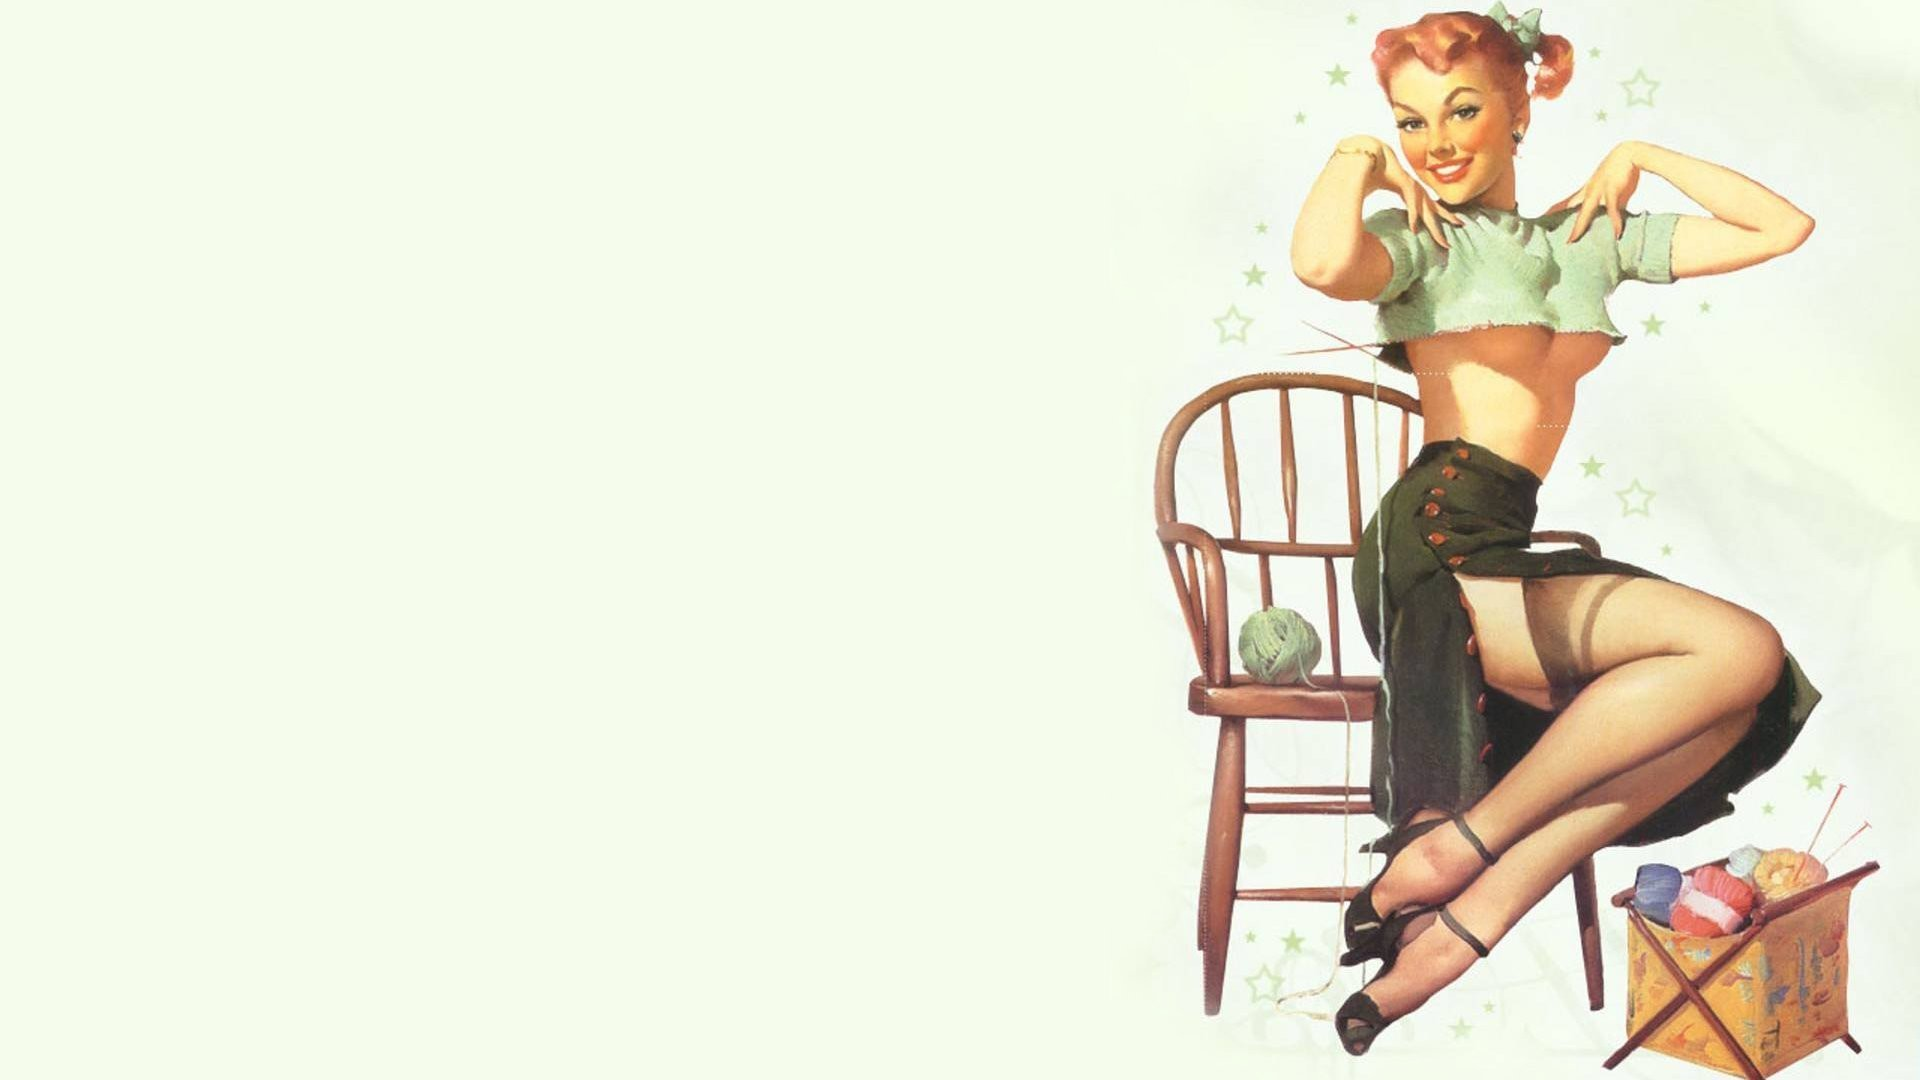 1920x1080 HD pin up girls wallpapers Specially for pin up girls and models